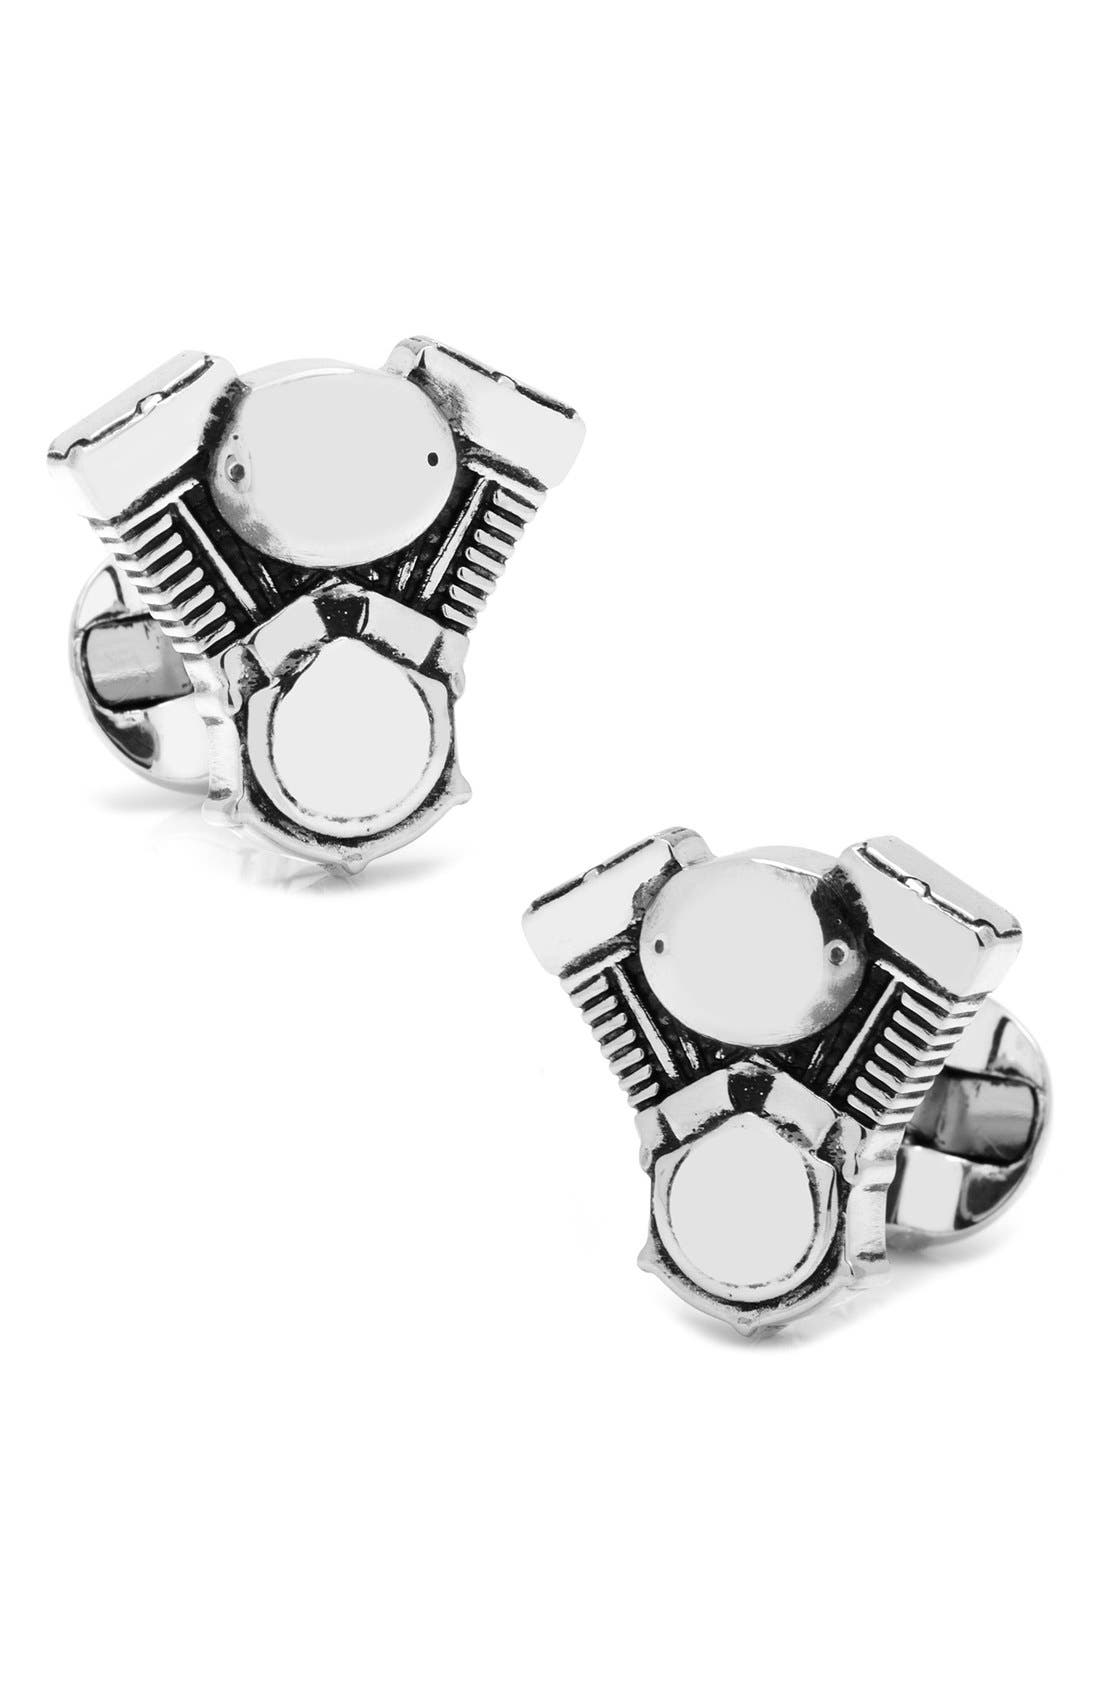 Main Image - Ox and Bull Trading Co. V-Twin Motor Cuff Links